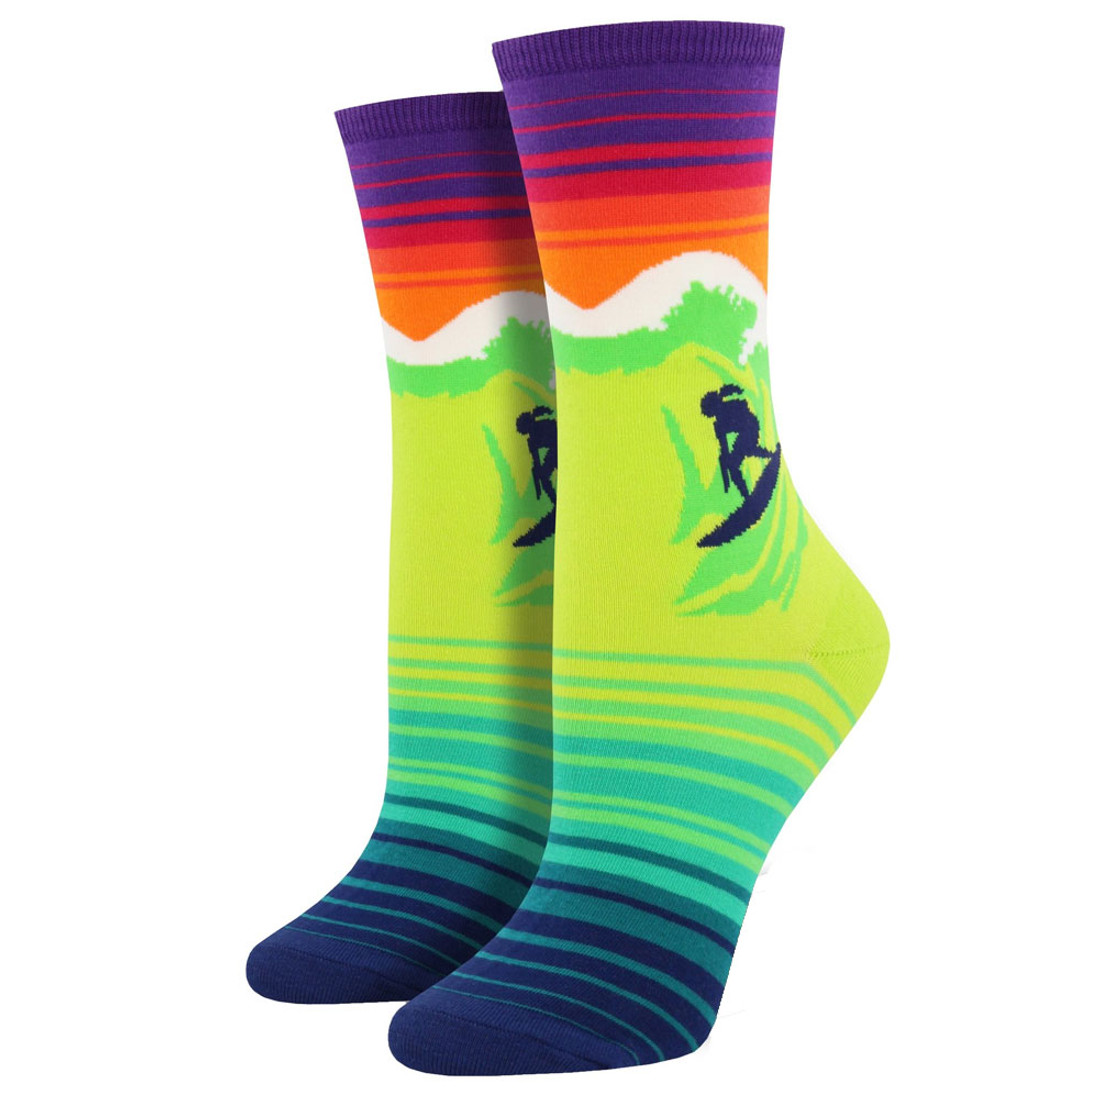 Women's Crew Socks Catch A Wave Surfer Green